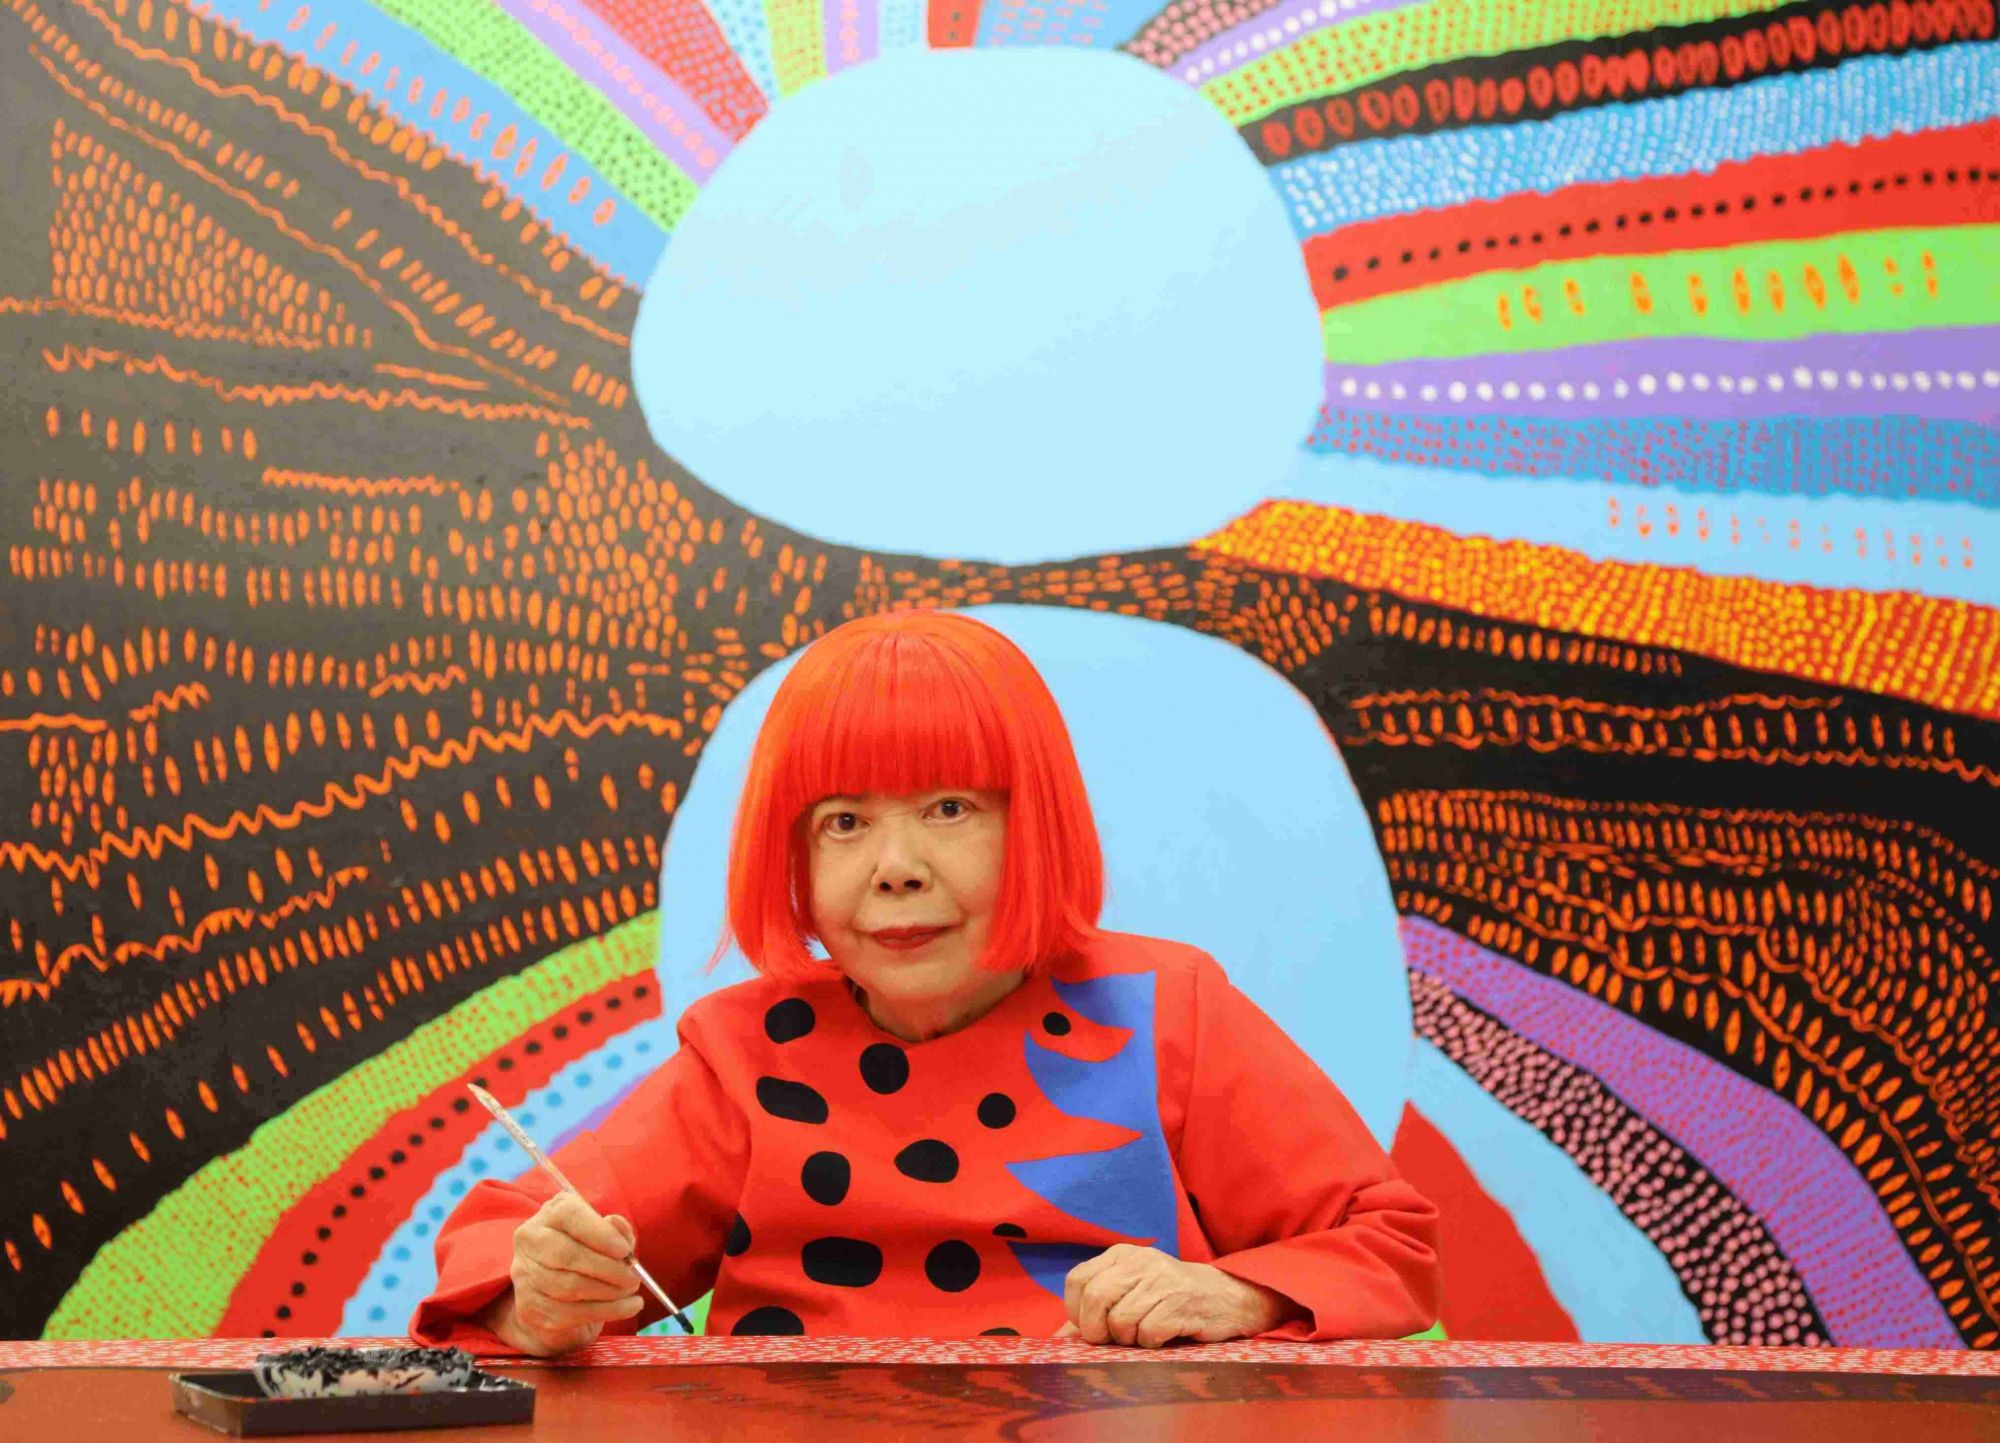 Next Stop For Yayoi Kusama? A Museum In Tokyo